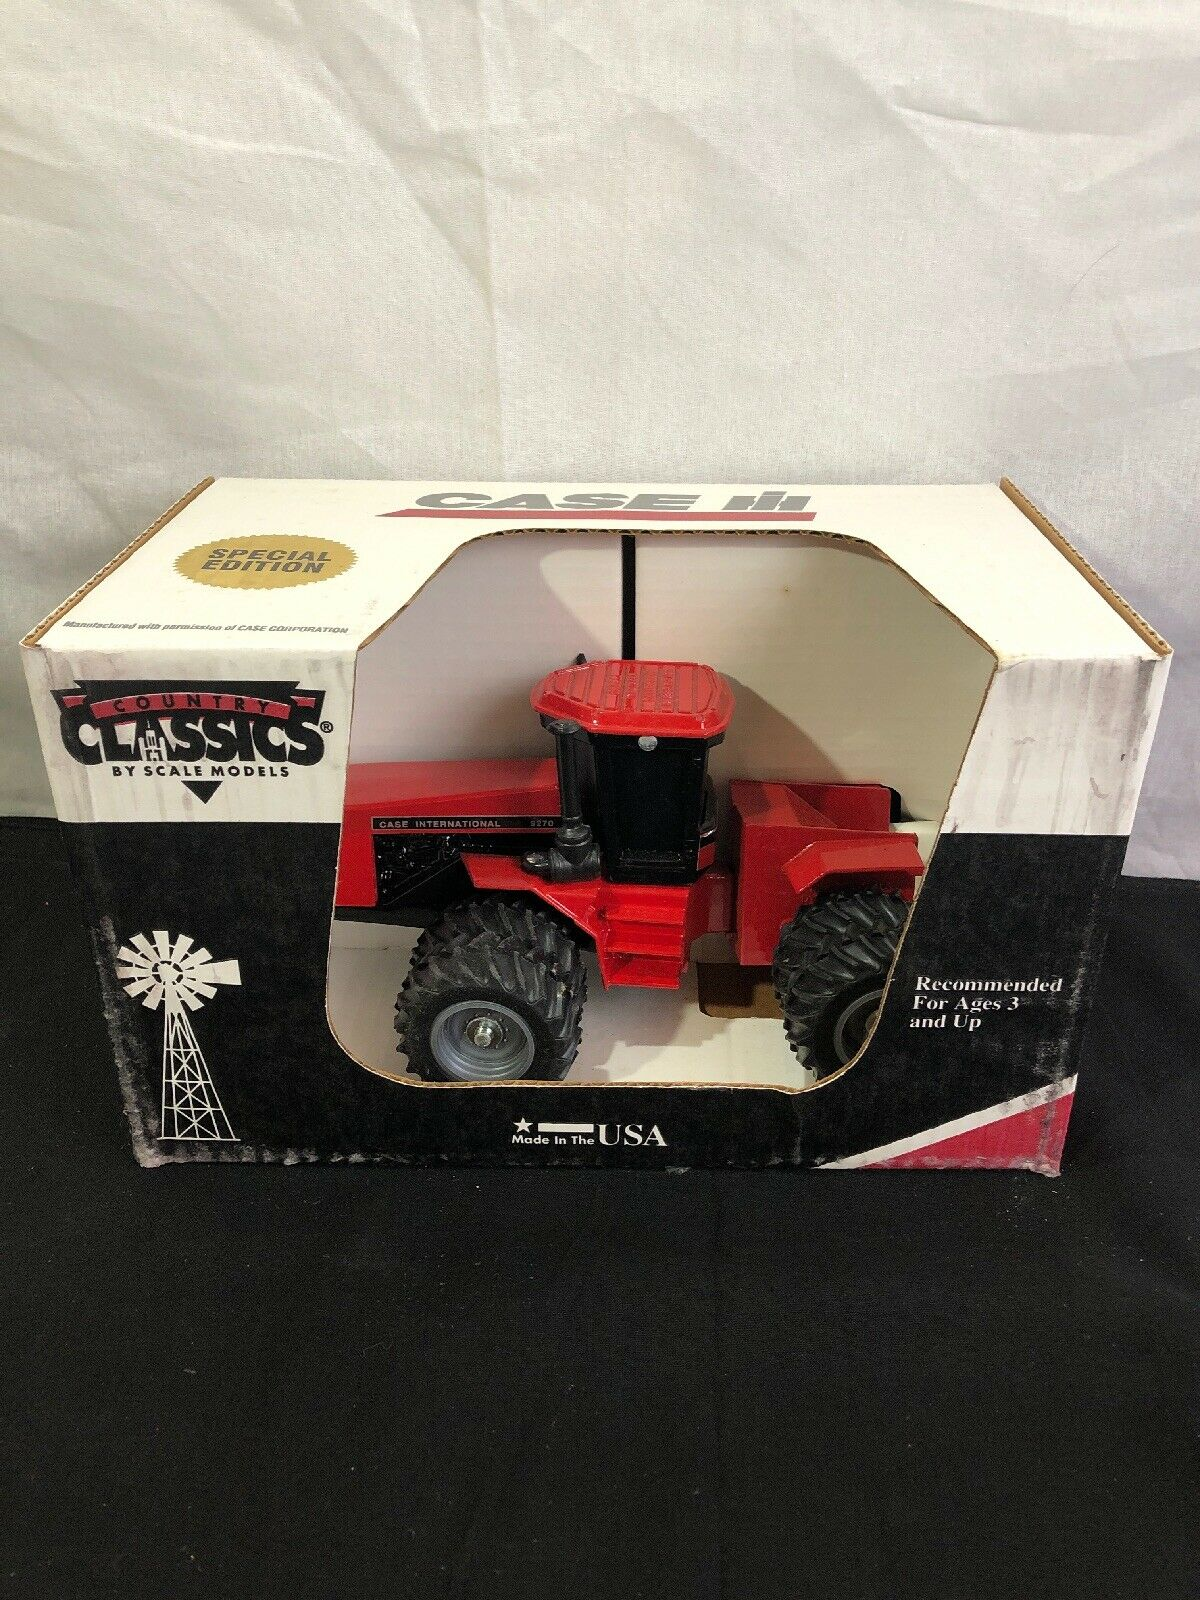 New In Box SPECIAL EDITION CASE INTERNATIONAL 9720 4 WHEEL DRIVE TRACTOR, IH